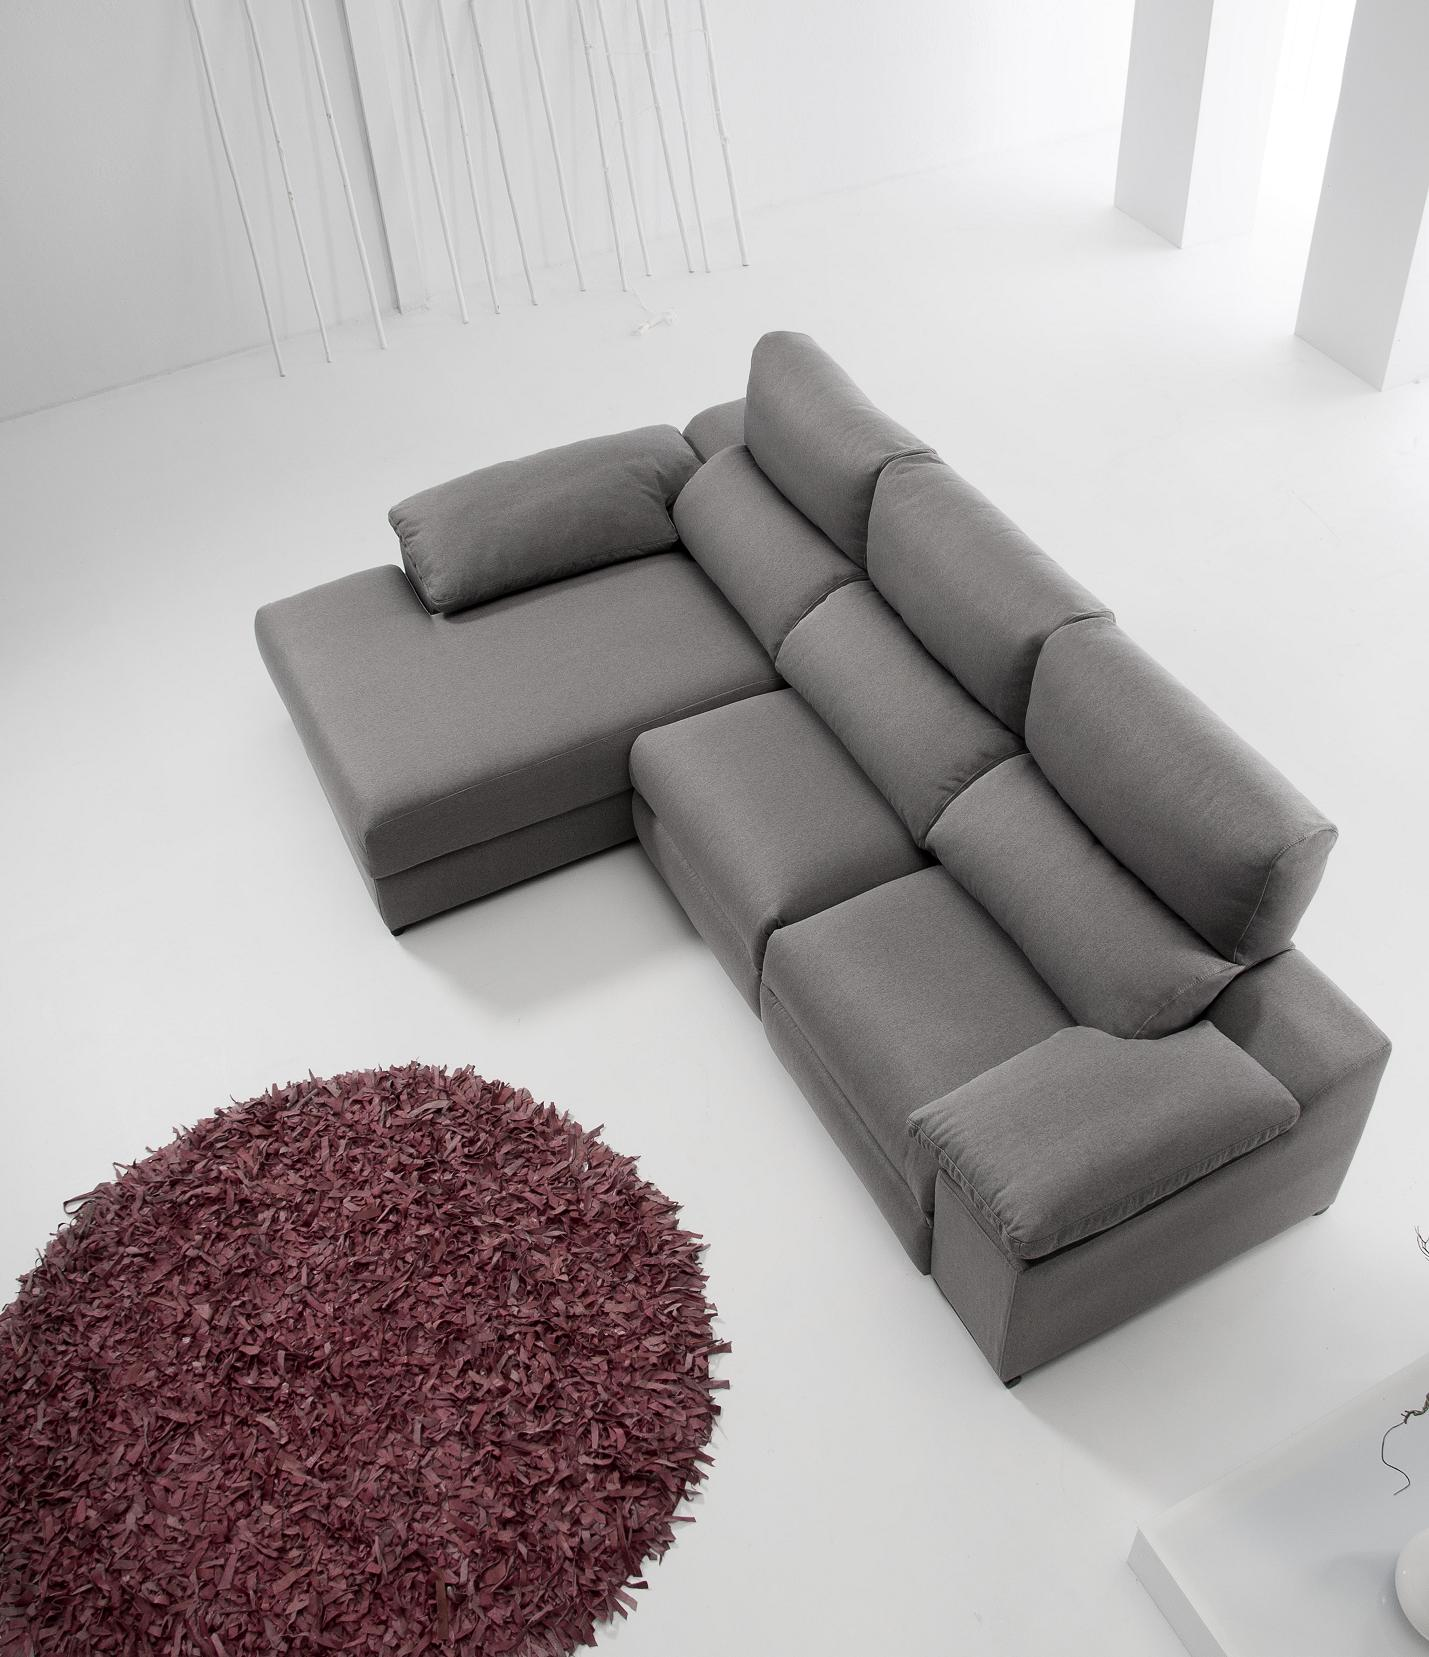 DANCE - SOFA CHAISE-LONGUE - SOFAS EN ELDA